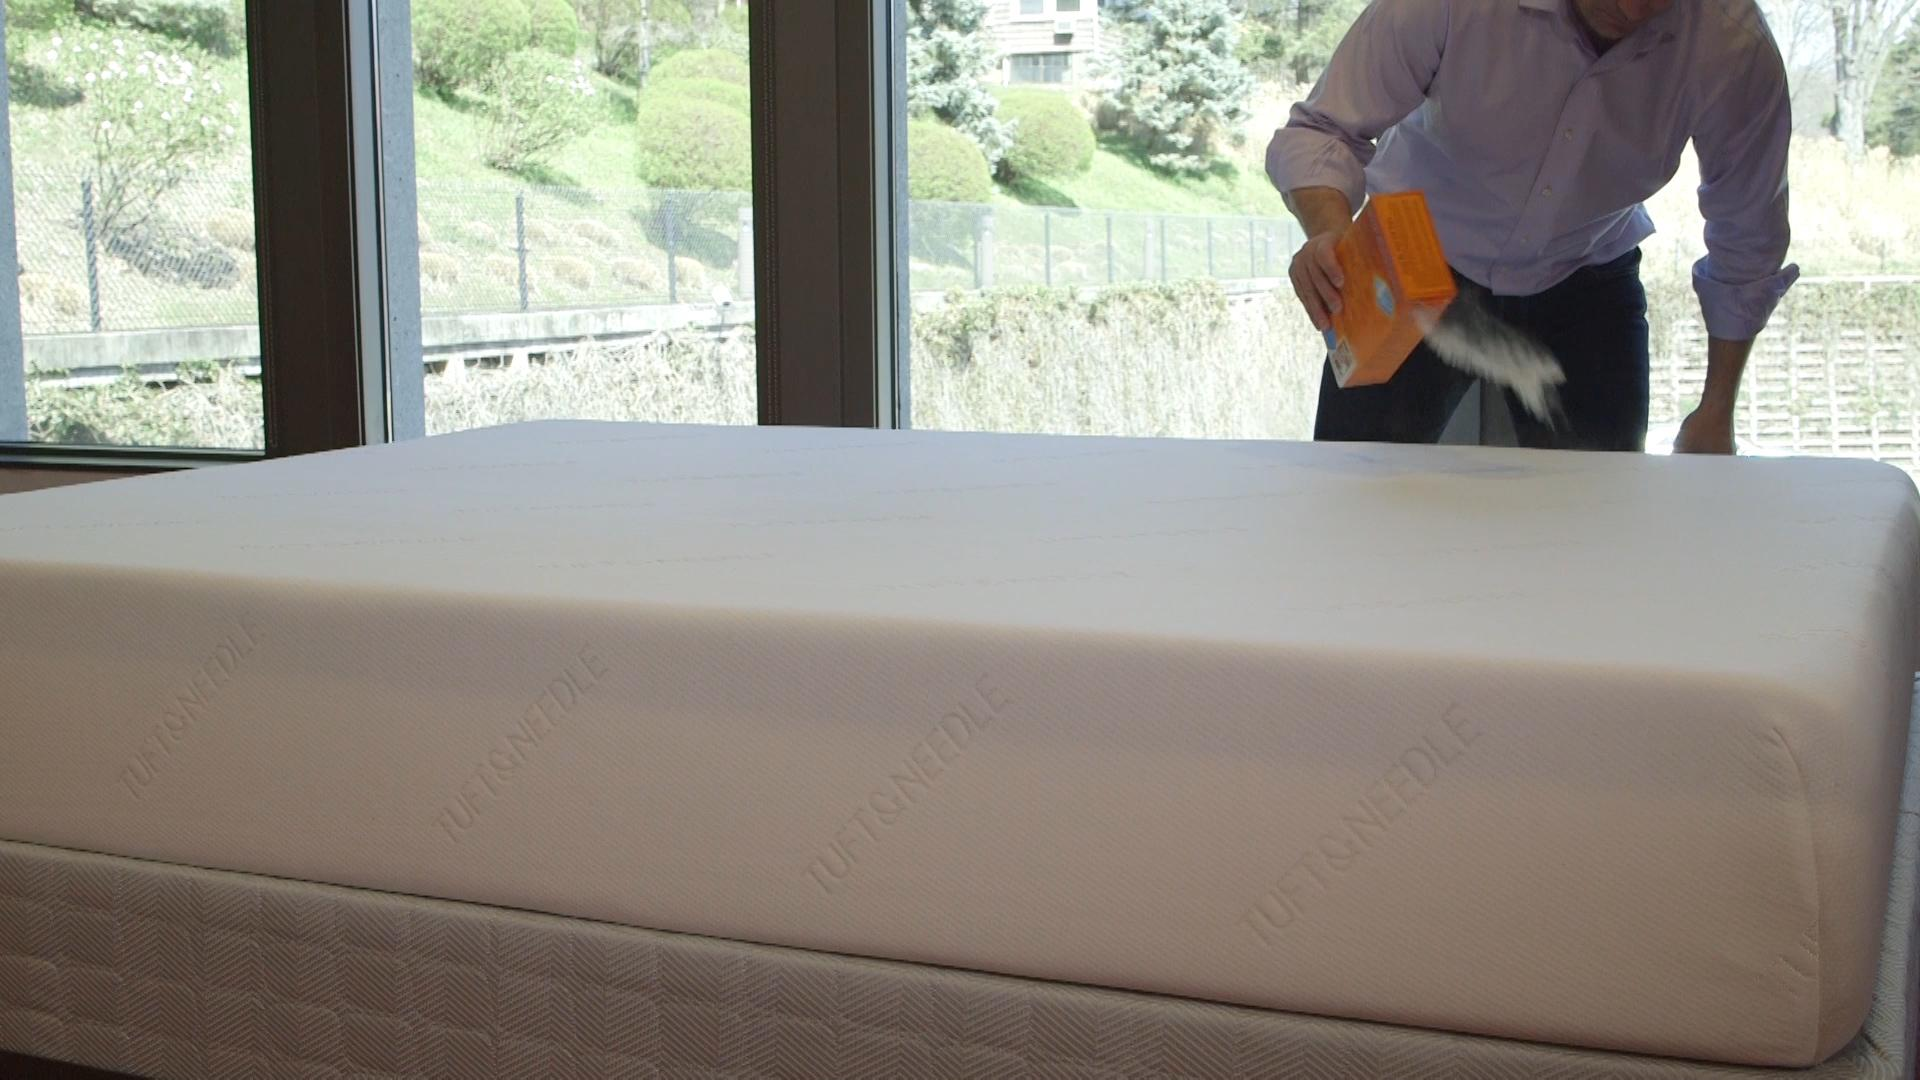 Why Should We Clean Mattresses?